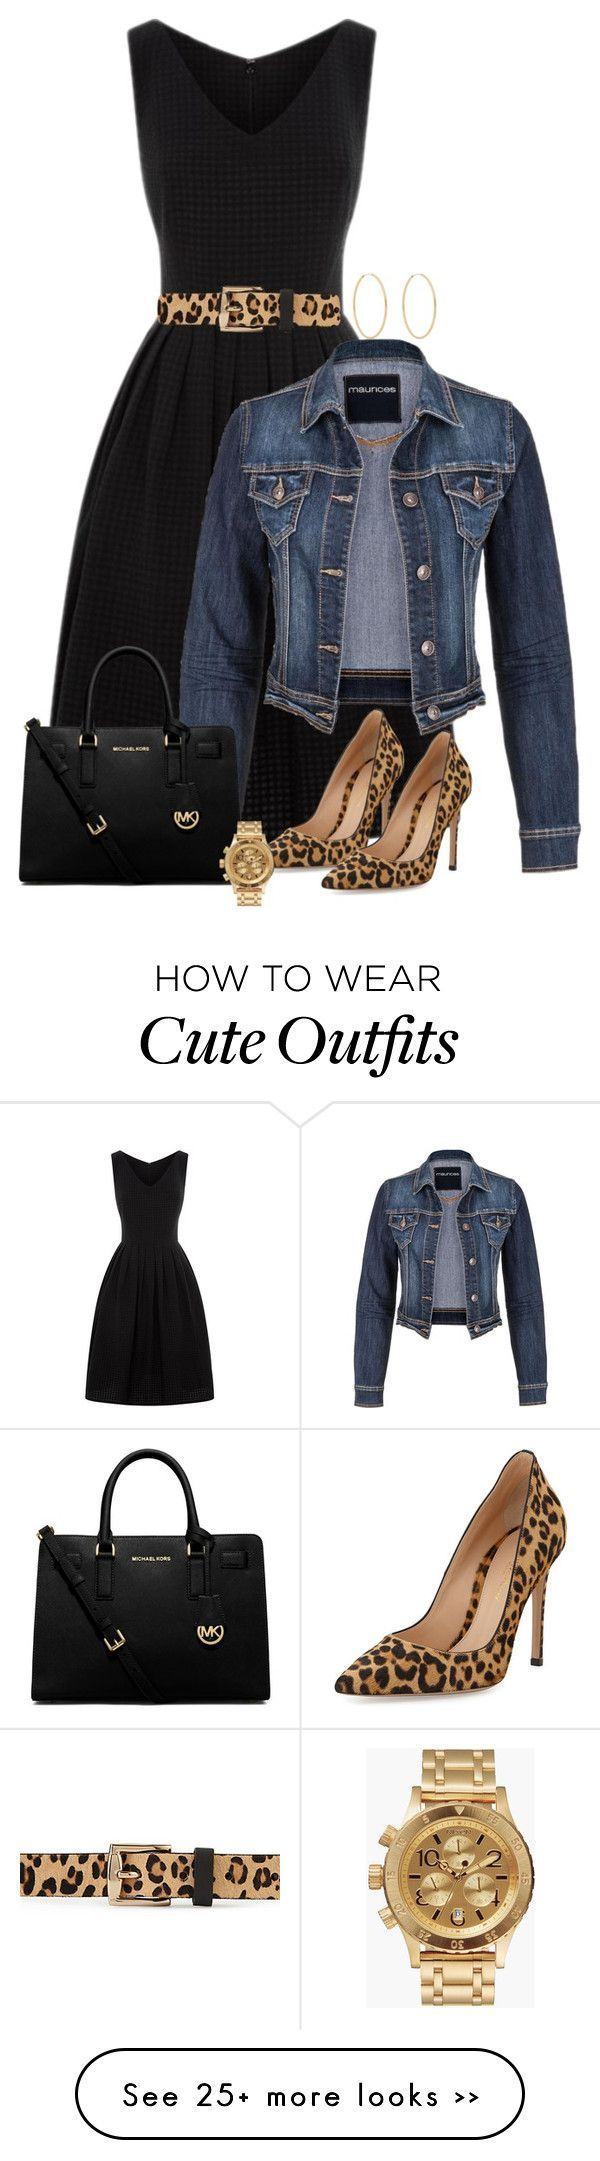 Black Dress and Leopard Shoes with jean jacket is a great look for any holiday or date night!